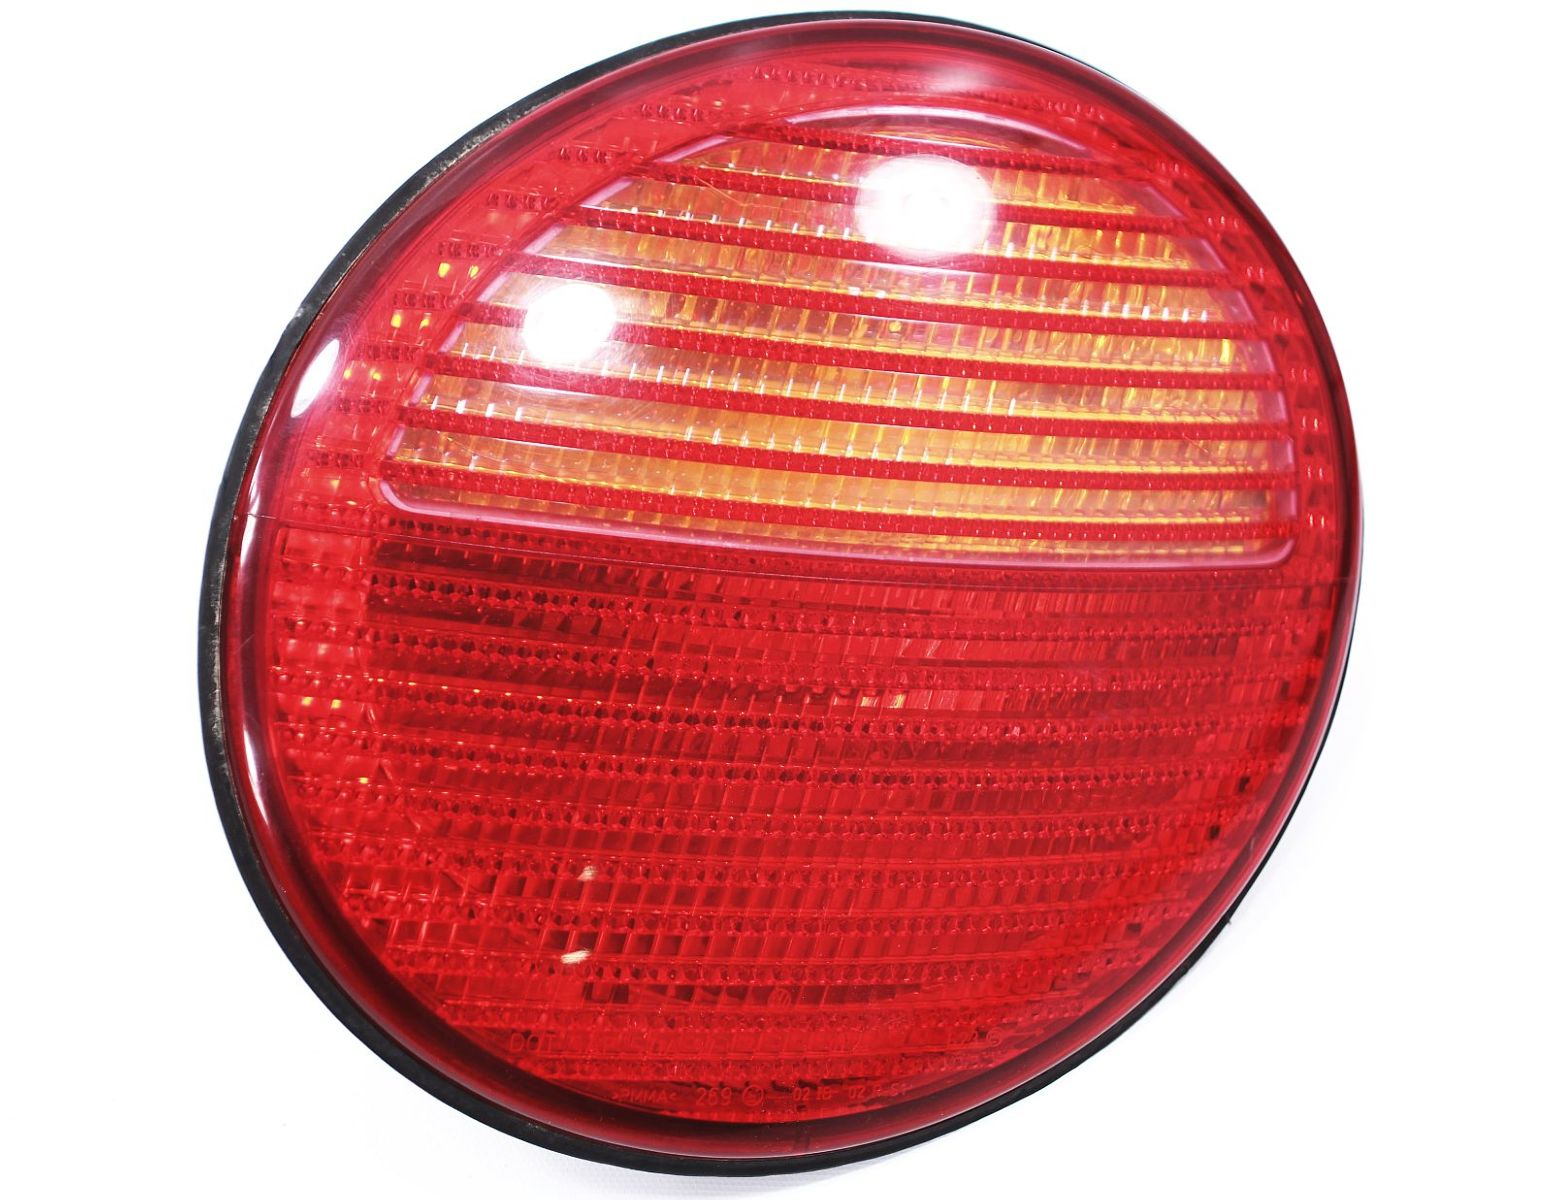 Rh Taillight 98 05 Vw Beetle Tail Light Lamp Genuine